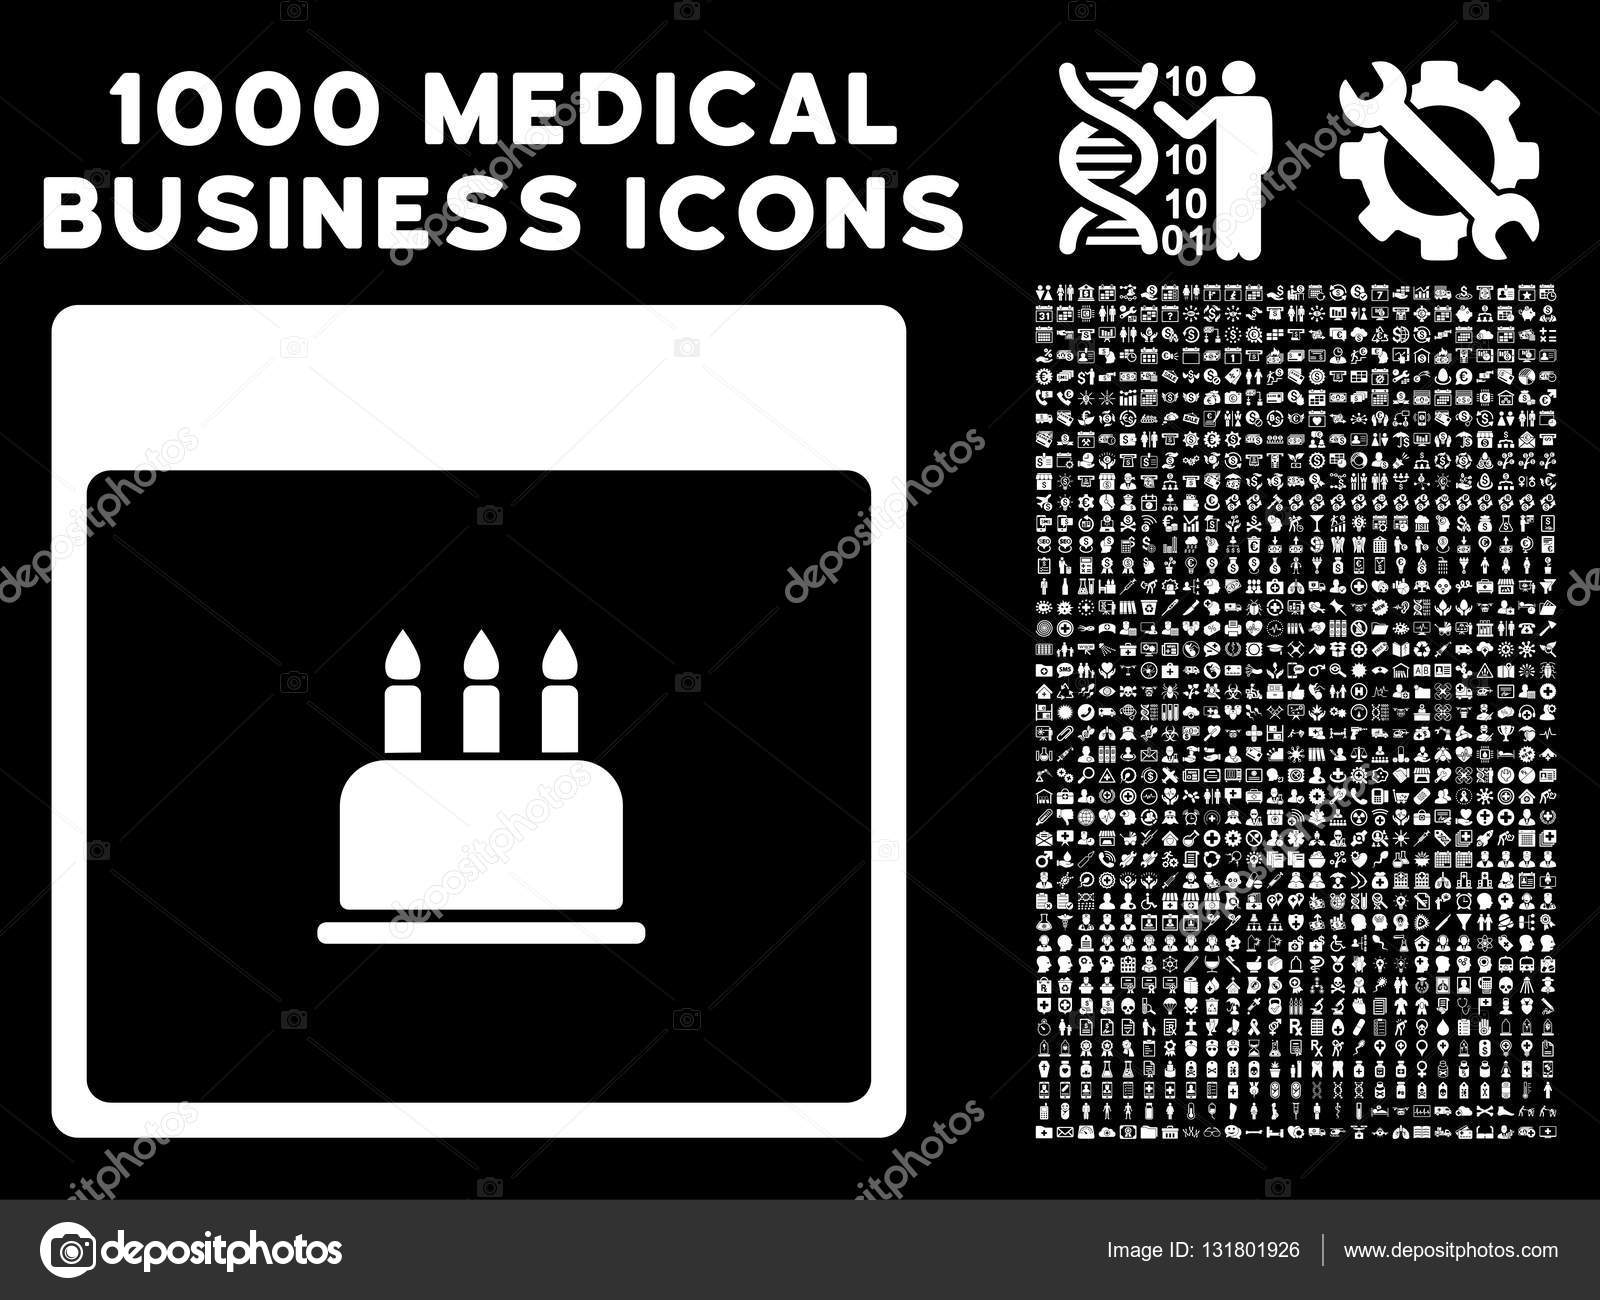 Birthday Cake Calendar Page Icon With 1000 Medical Business Symbols